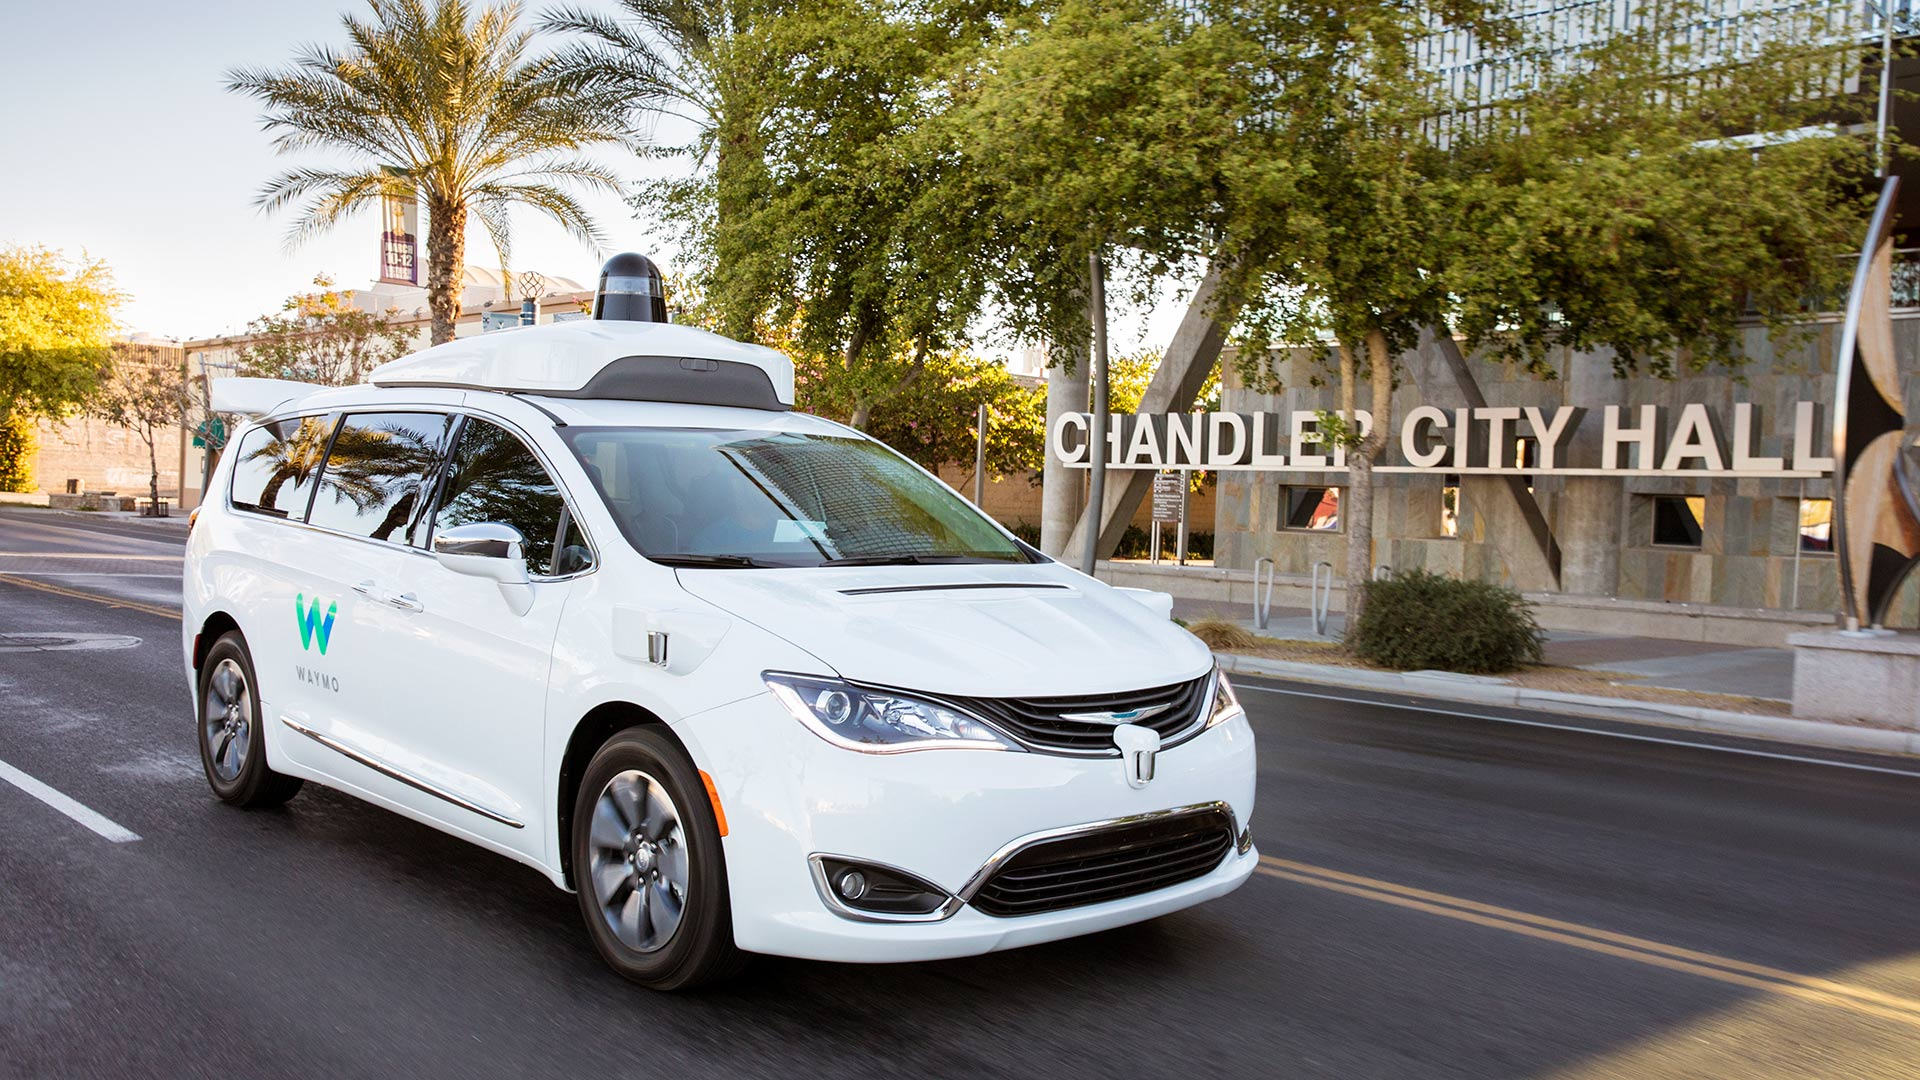 A Waymo self-driving vehicle in Chandler, Arizona.